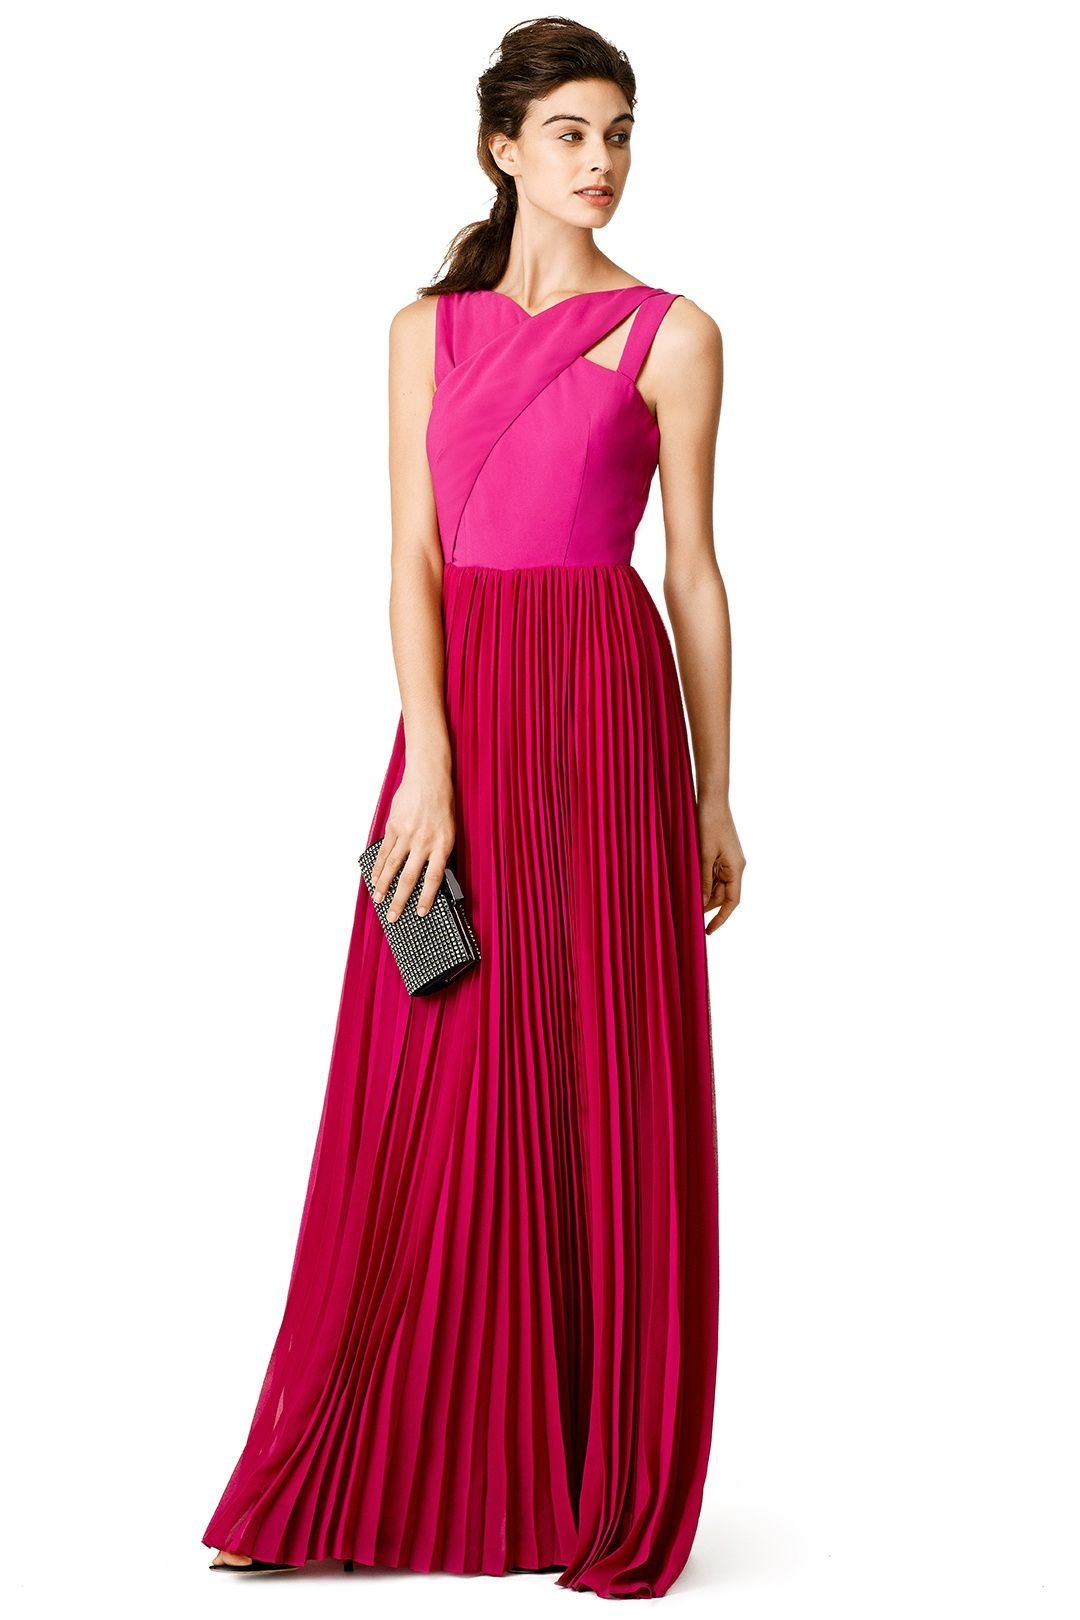 Red Bridesmaid Dresses Under 100 | Top 300 Red bridesmaid dresses ...